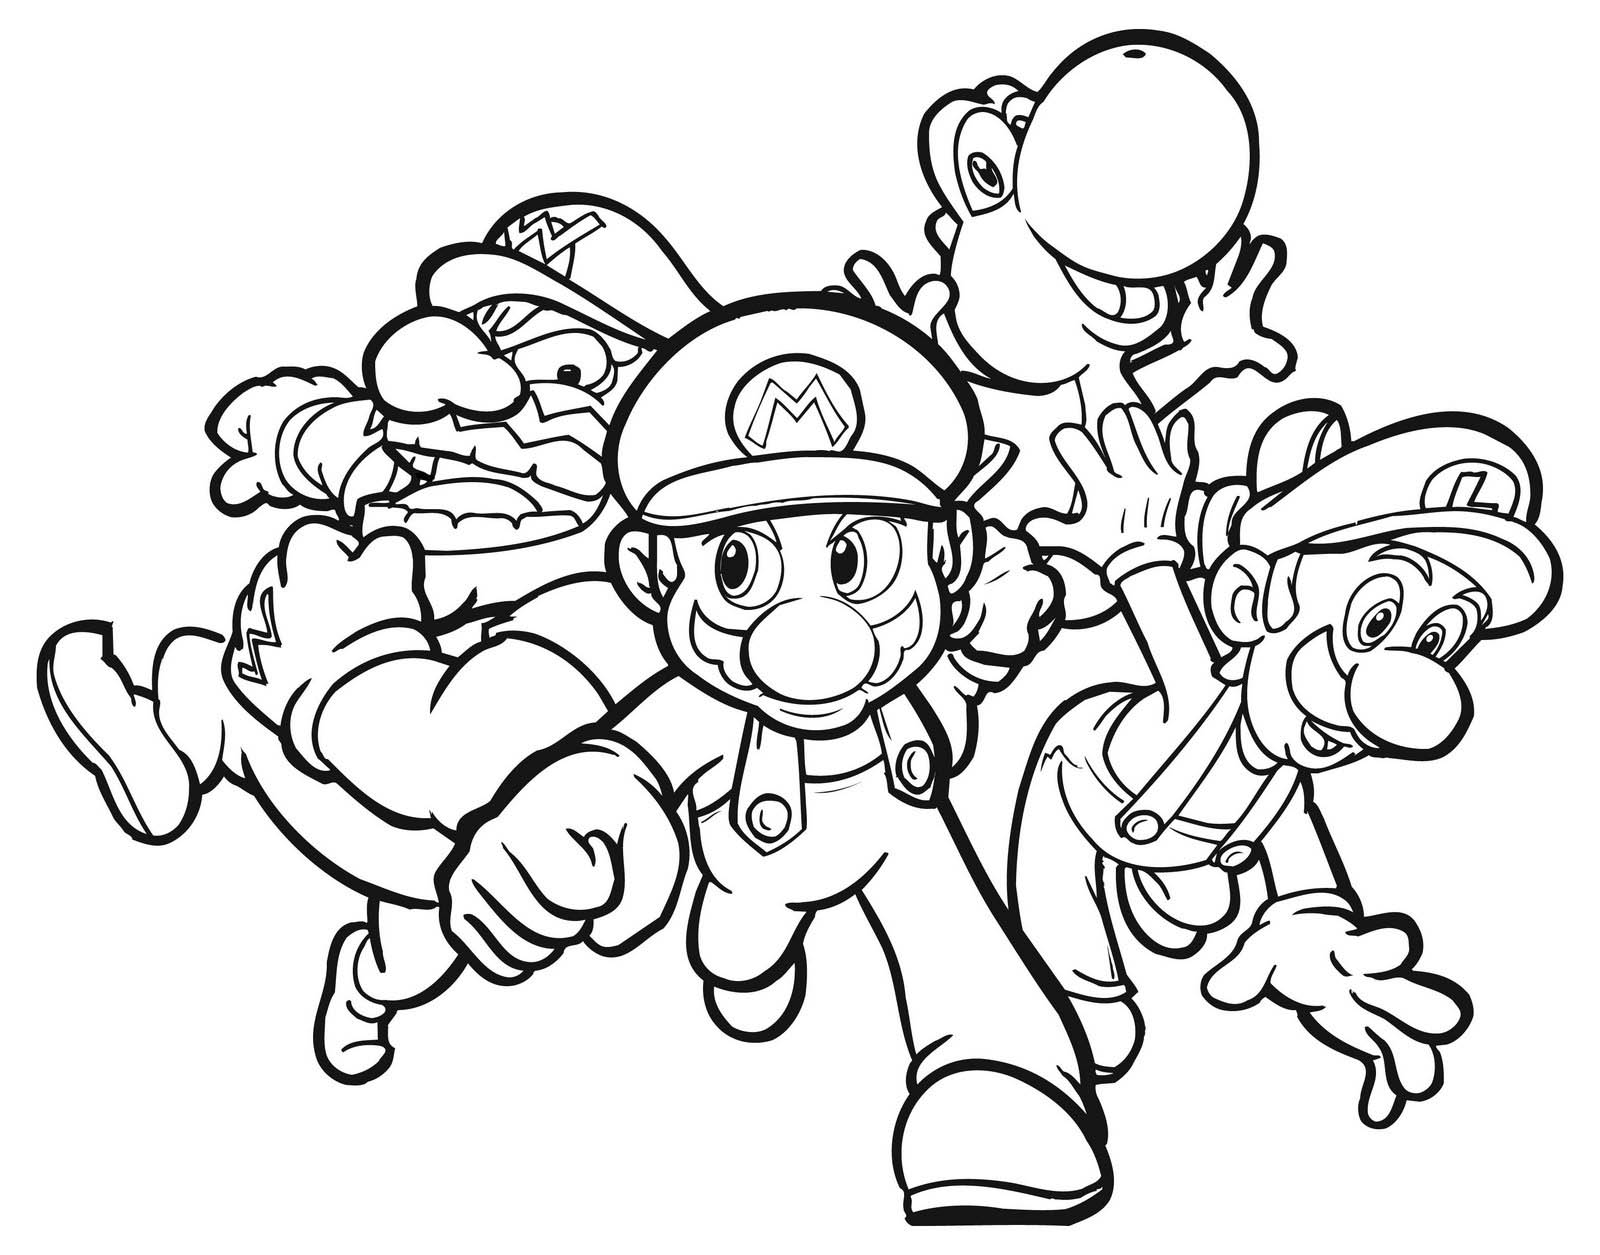 42573 also super mario coloring pages for kids  252831 2529 moreover  further  as well Woody Coloring Pages 022 besides  as well lego kolorowanki 16 furthermore  furthermore  together with  furthermore MMCH Y2 027 001. on disney mickey fireman coloring pages